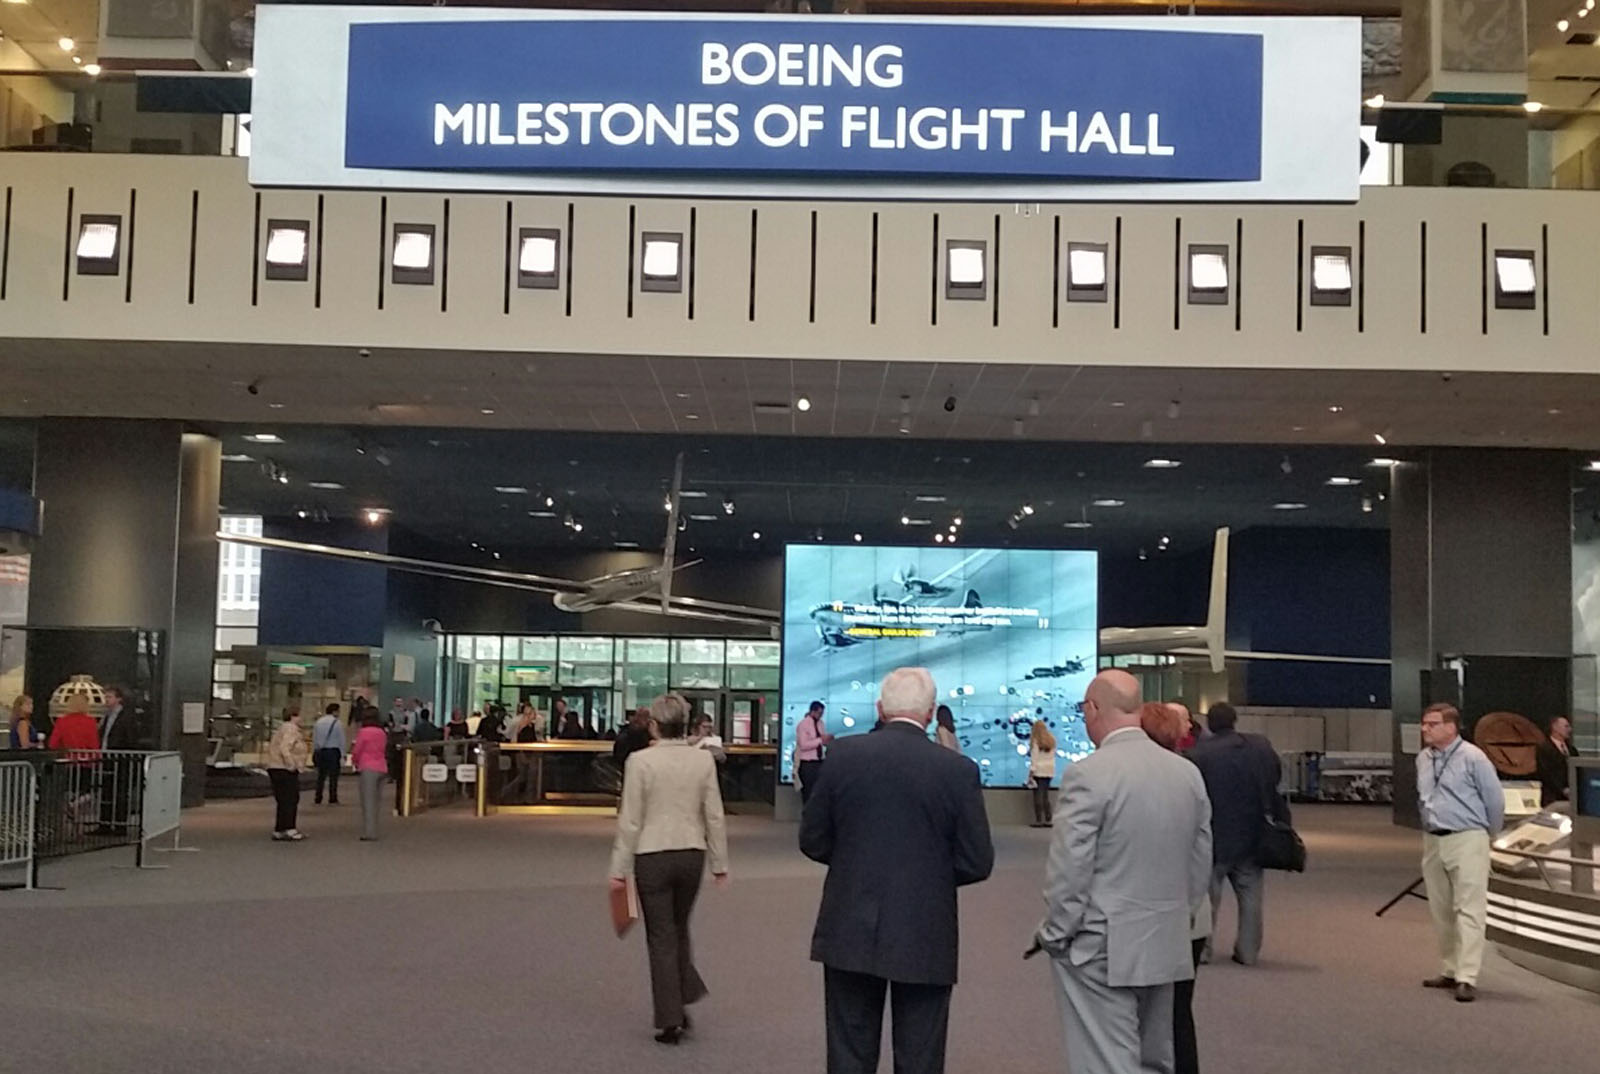 The newly revamped Boeing Milestones of Flight Hall at the Air and Space Museum. It was finished in time to celebrate the museum's 40th birthday. (WTOP/Kathy Stewart)